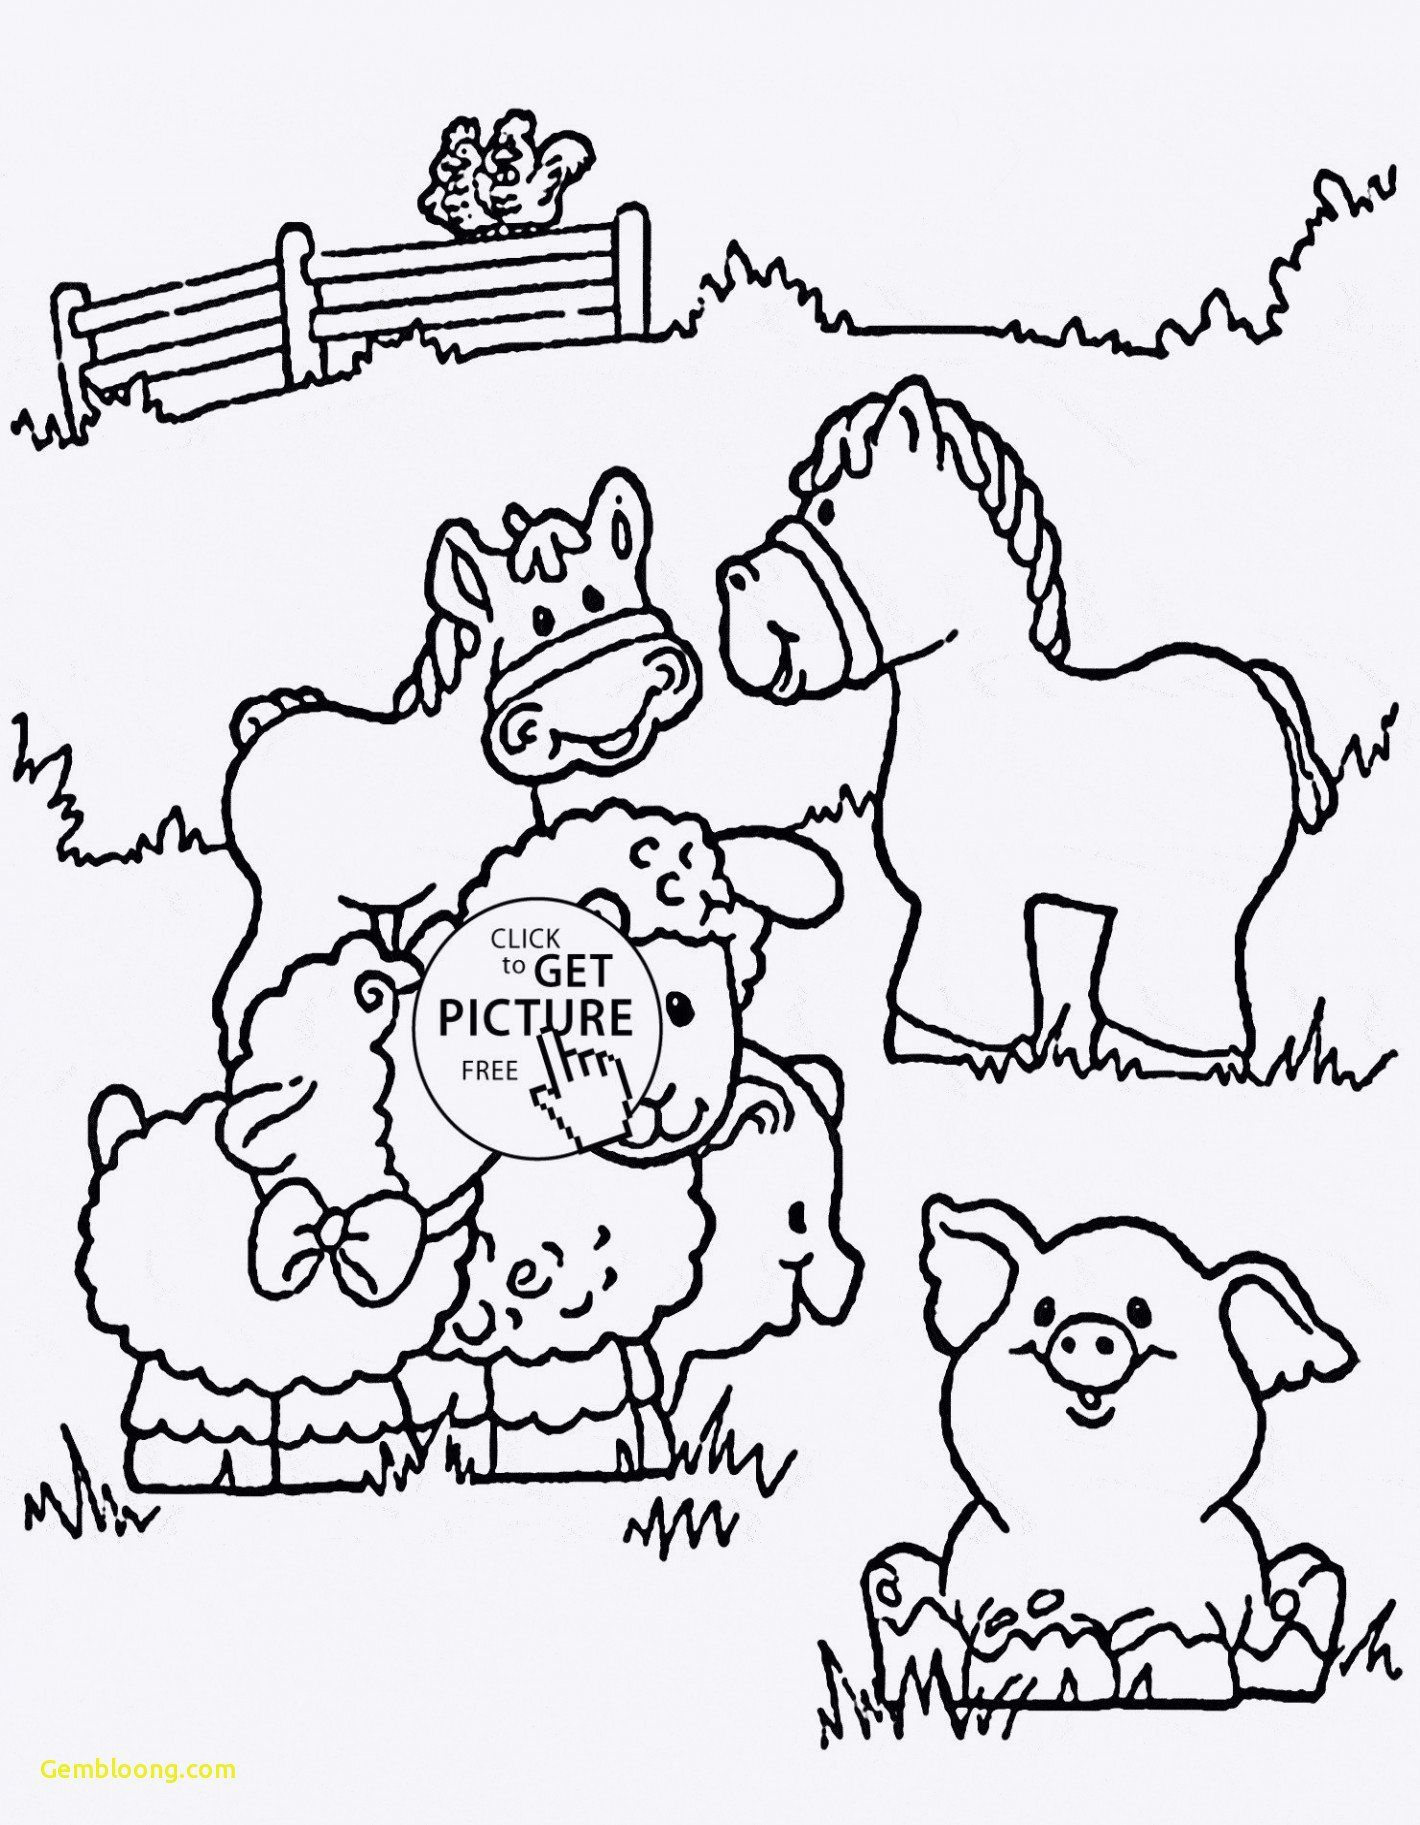 Coloring Pages Farm Animals Coloring Pages Farm Animal Coloring Sheets New Farm Farm Coloring Pages Animal Coloring Pages Horse Coloring Pages